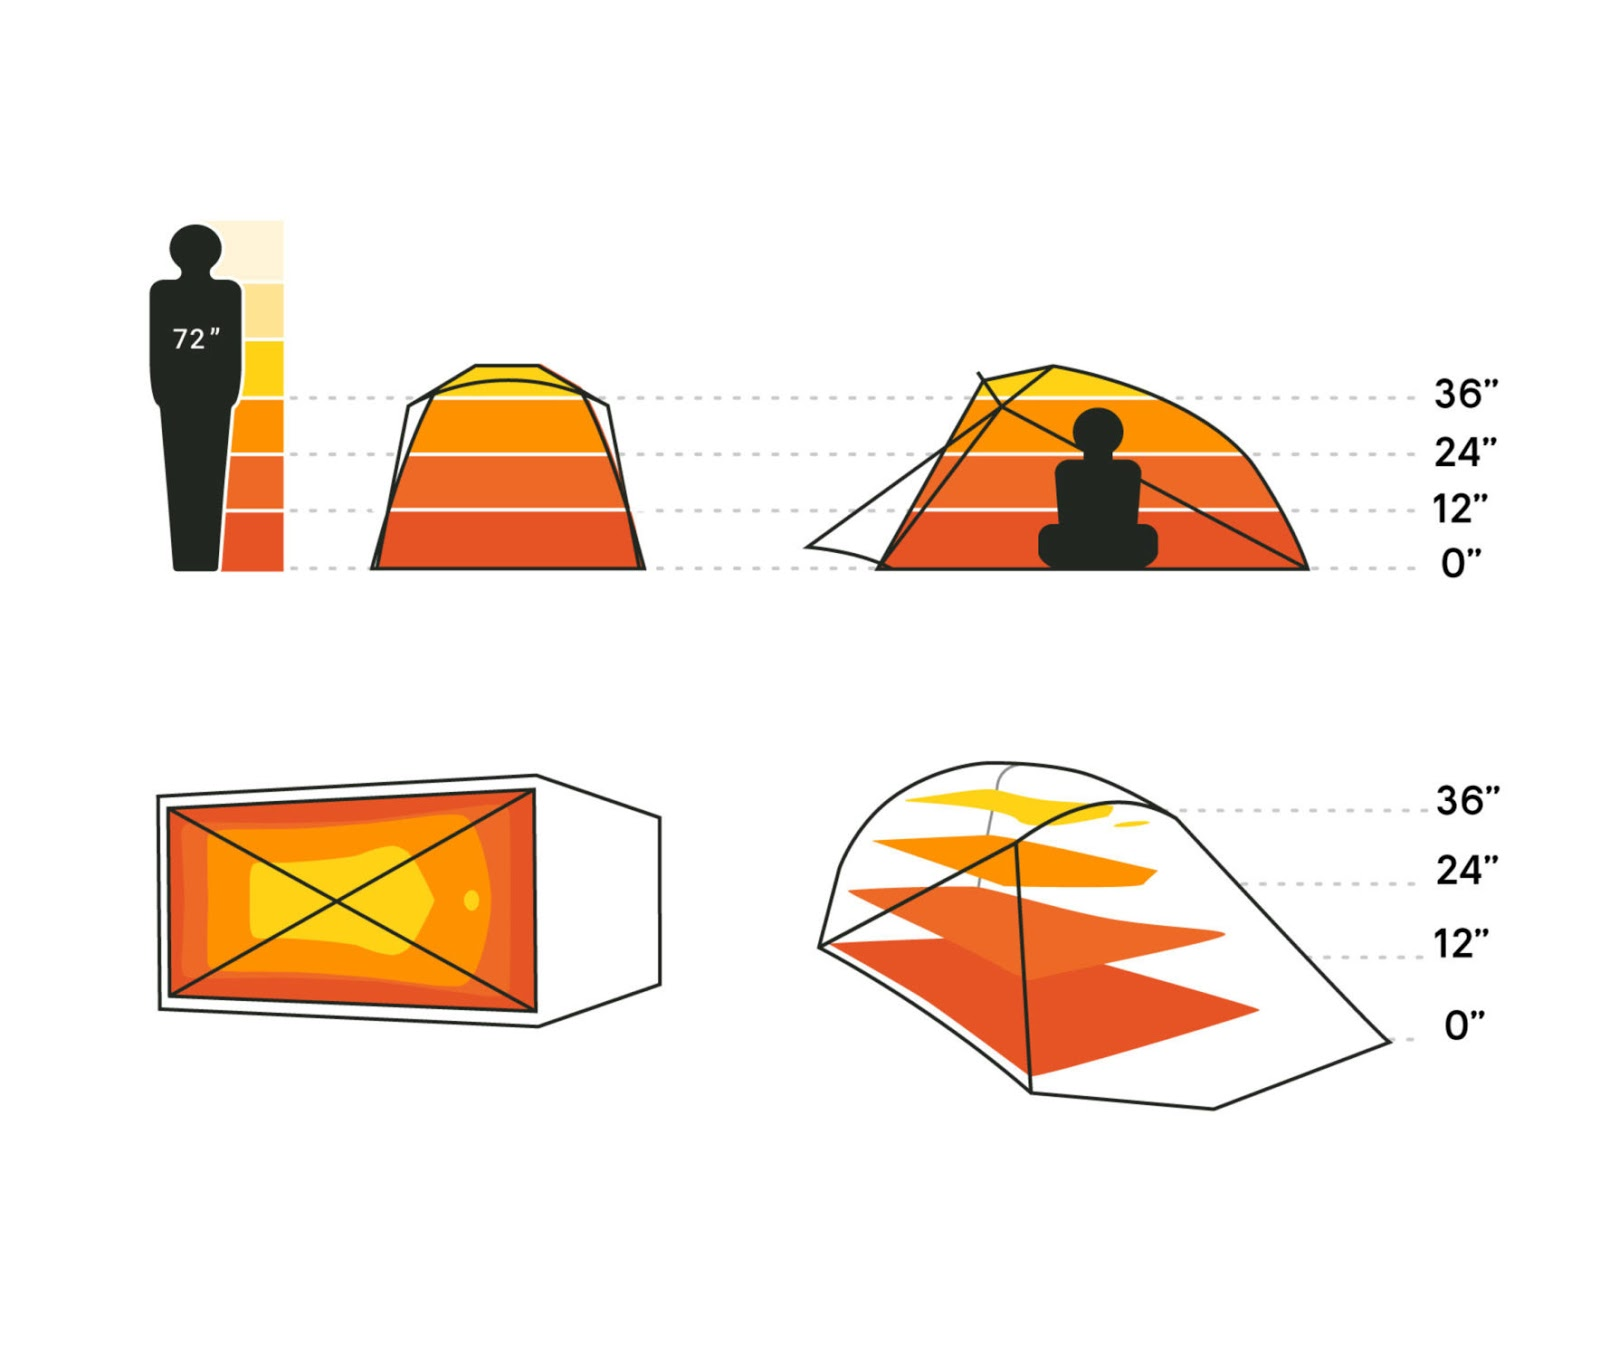 illustration showing the geometric configuration of the nemo kunai 2p tent